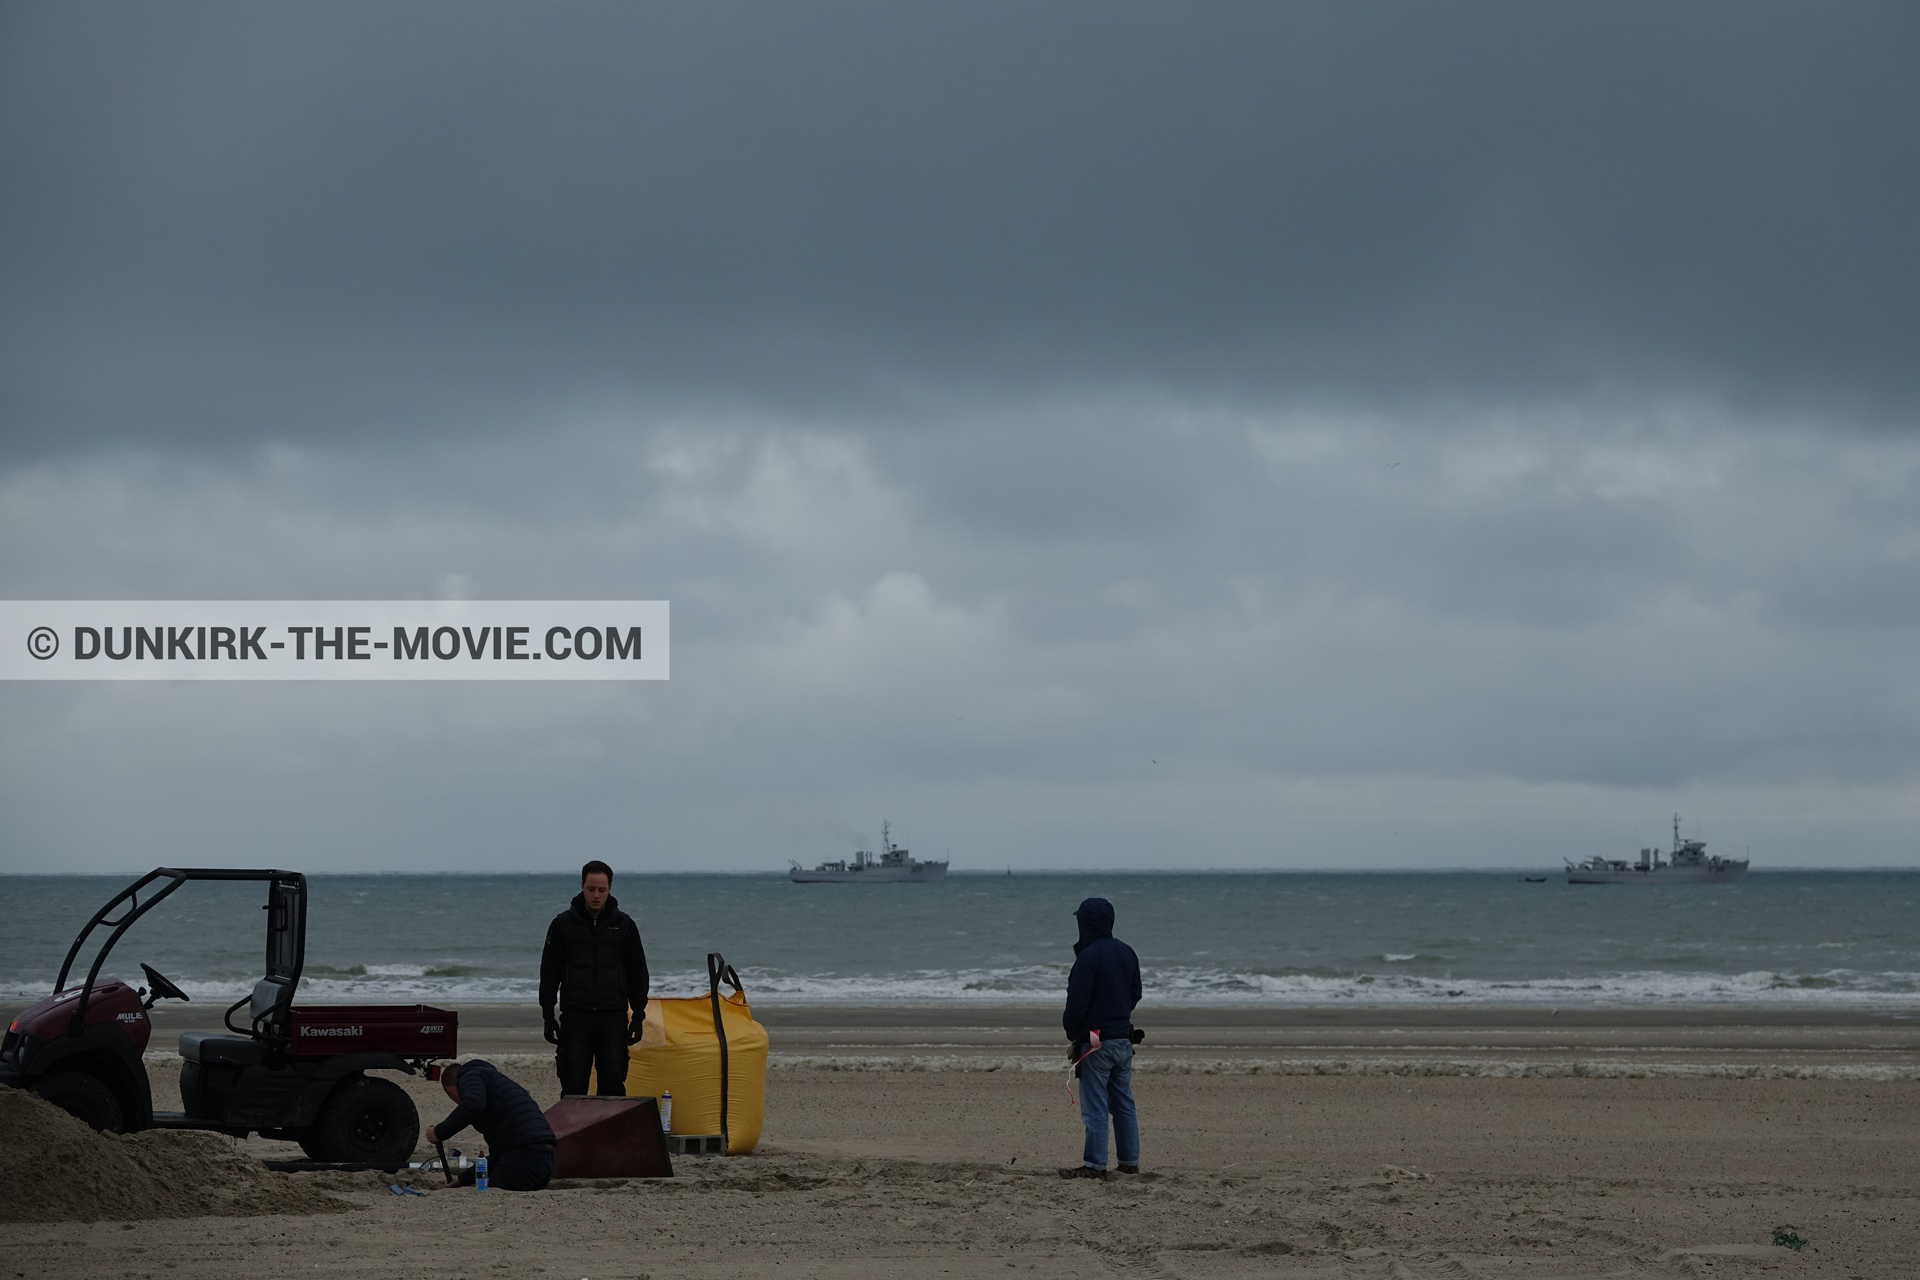 Picture with boat, cloudy sky, beach, technical team,  from behind the scene of the Dunkirk movie by Nolan